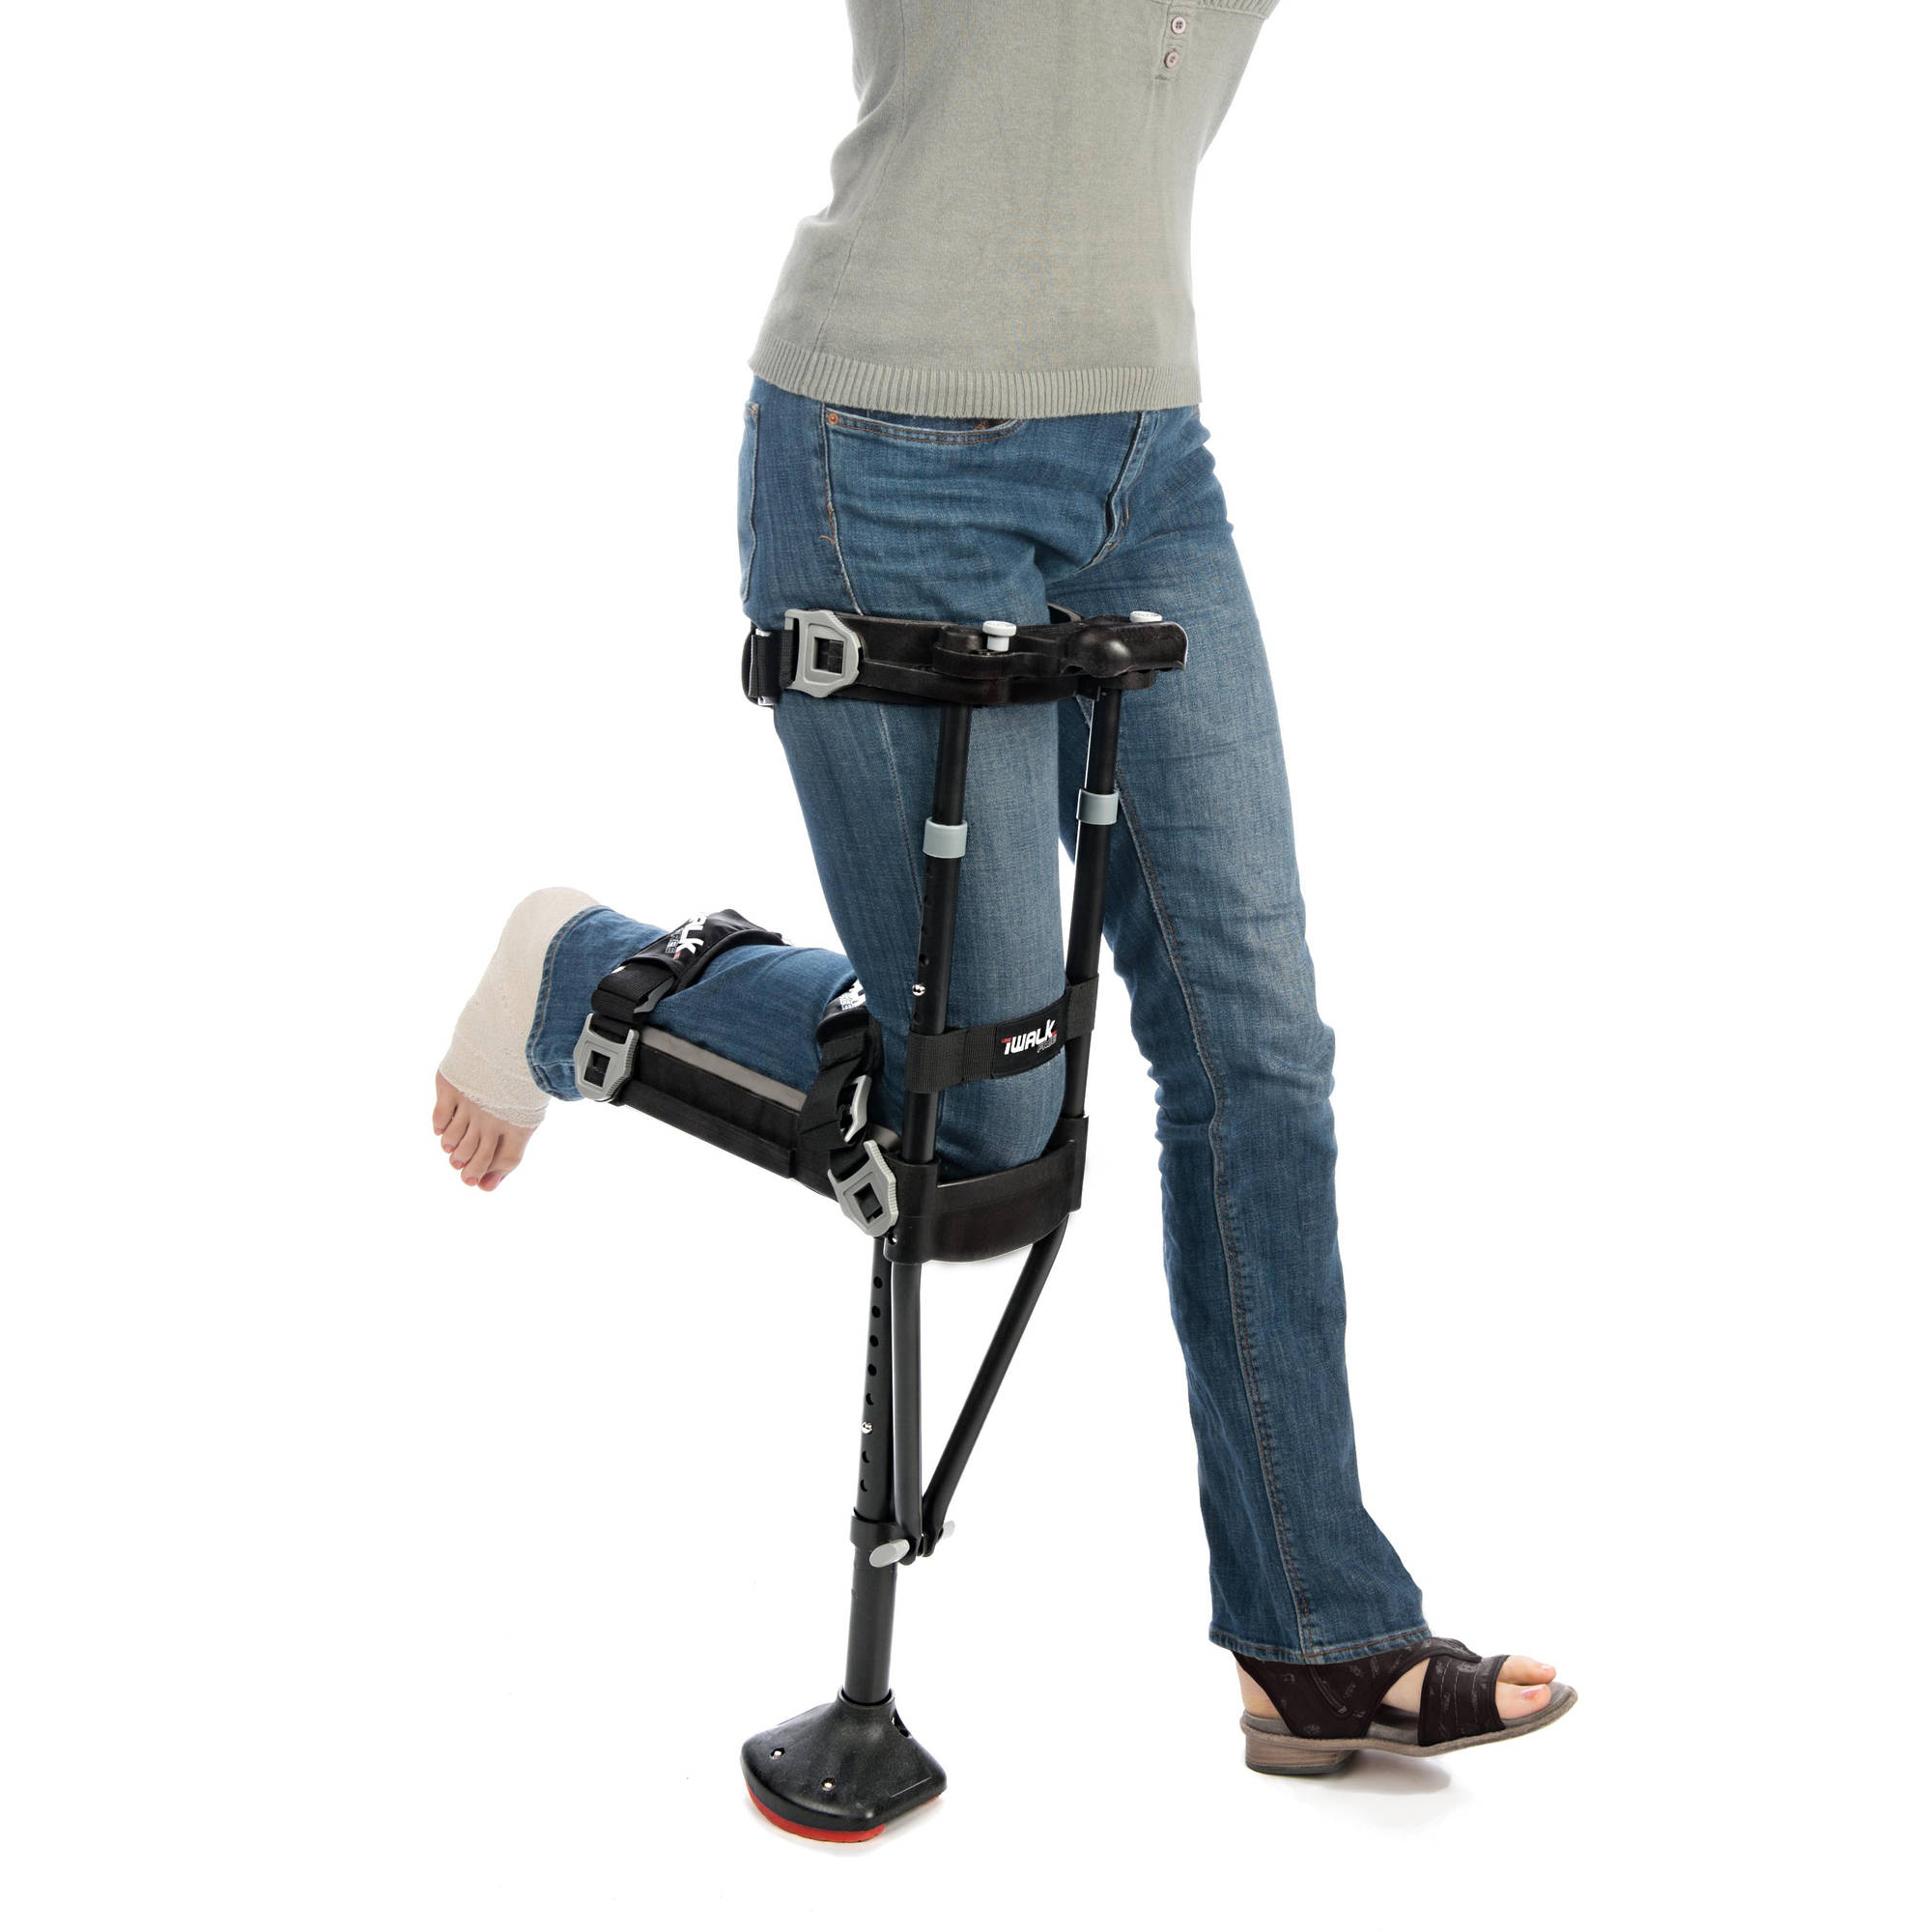 iWalk 2.0 hands-free knee crutch